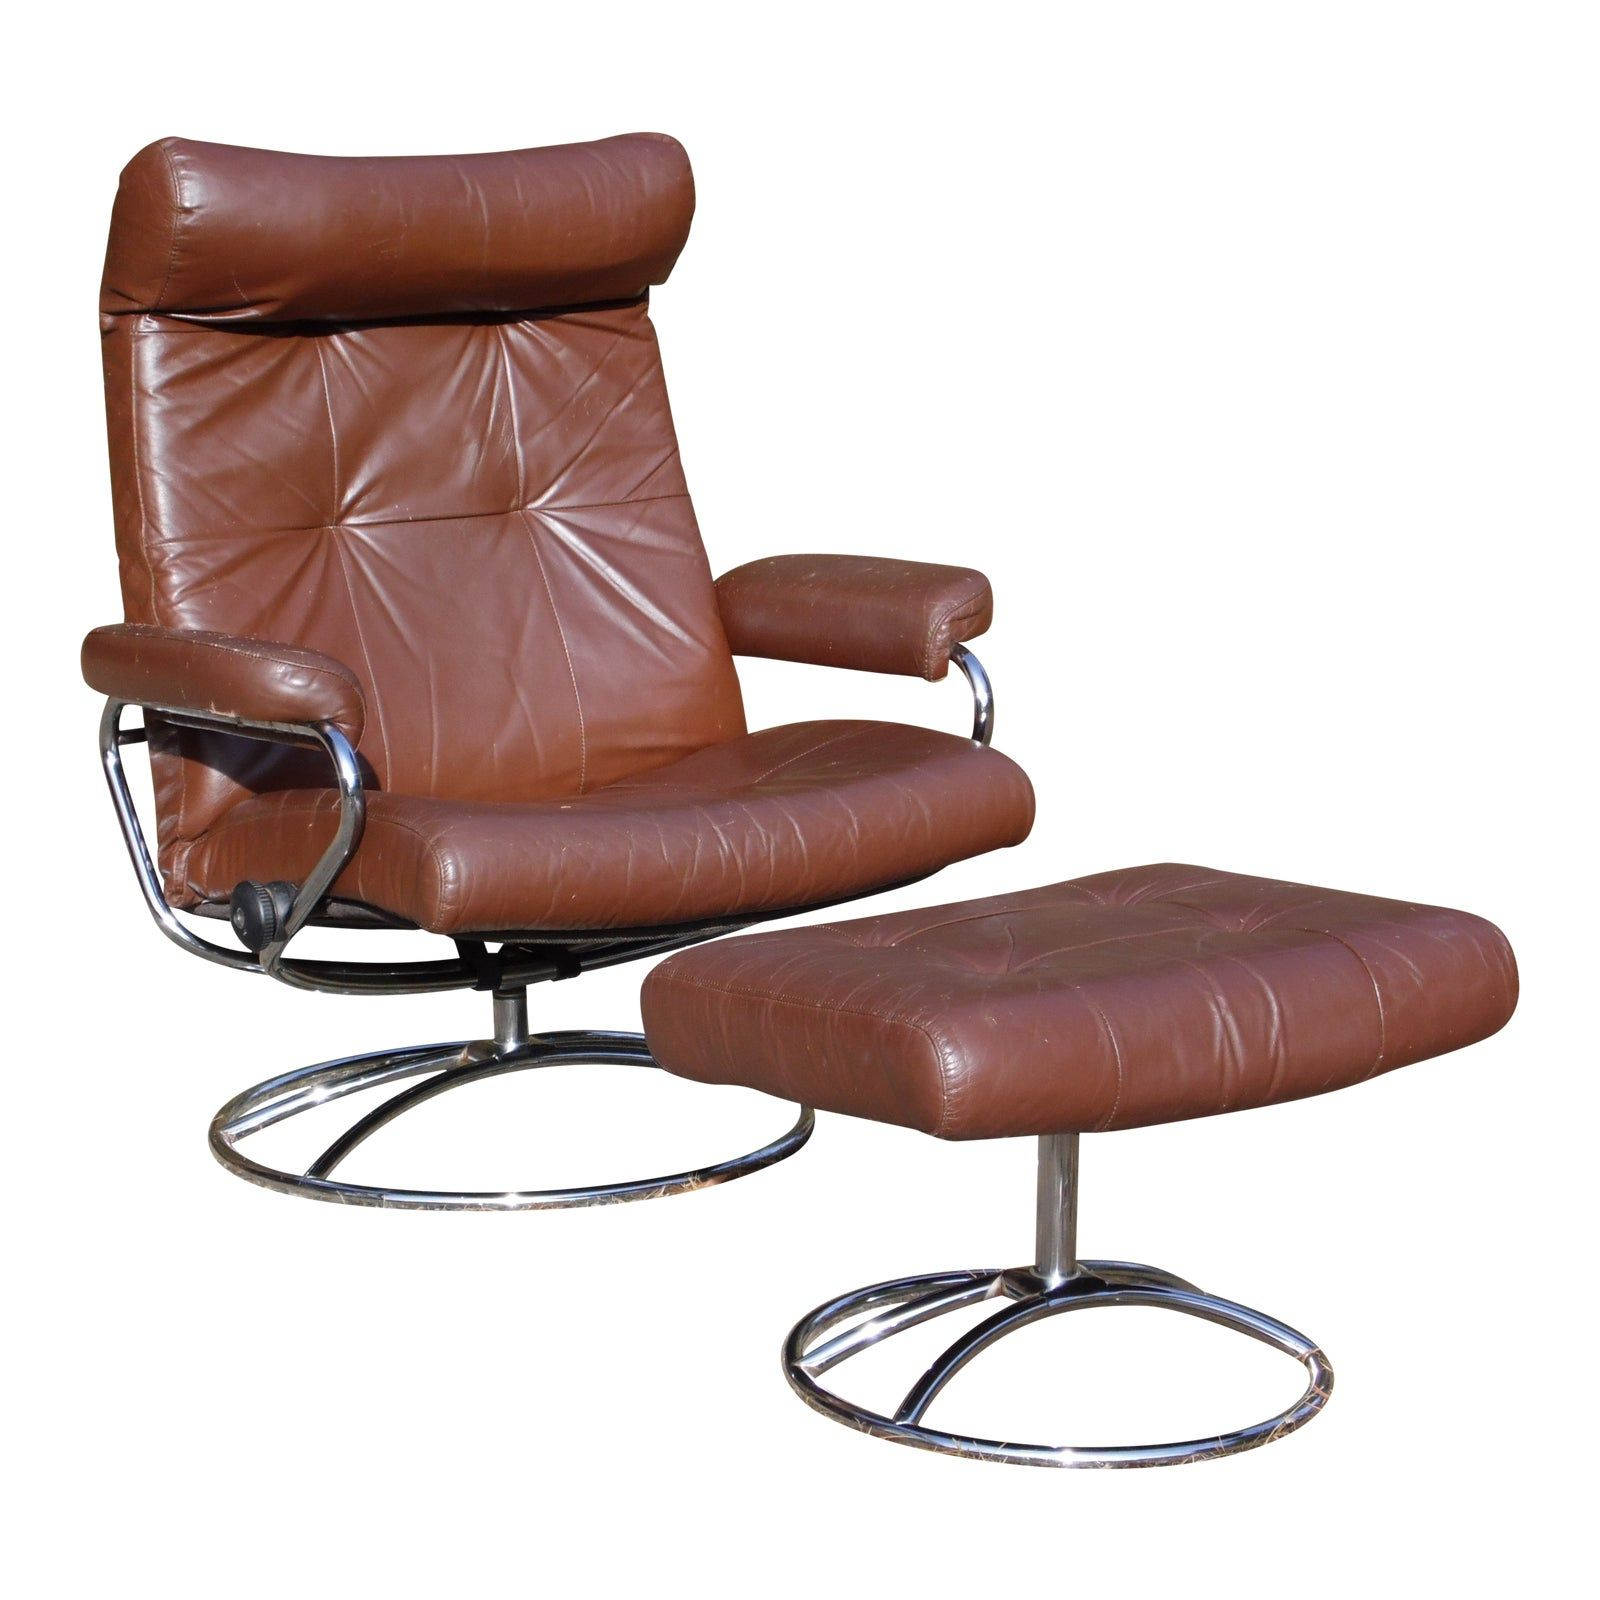 Vintage Mid Century Modern Ekornes Stressless Lounge Chair Ottoman Chrome Base With Images Chair And Ottoman Mid Century Modern Chair